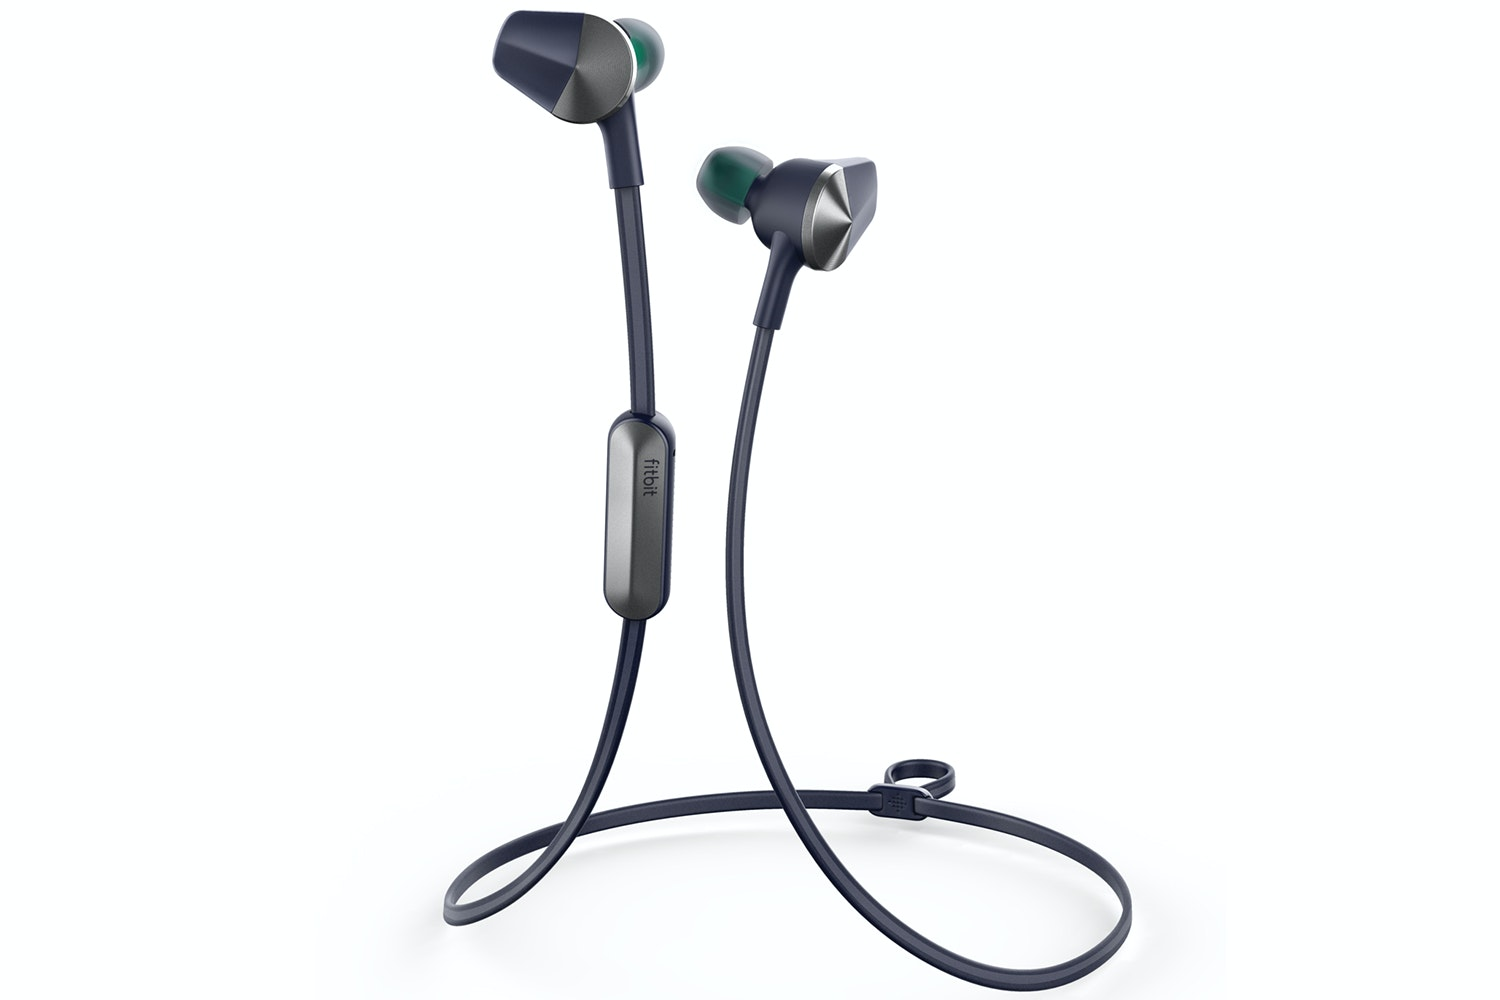 Fitbit Flyer Wireless In Ear Headphones | Nightfall Blue